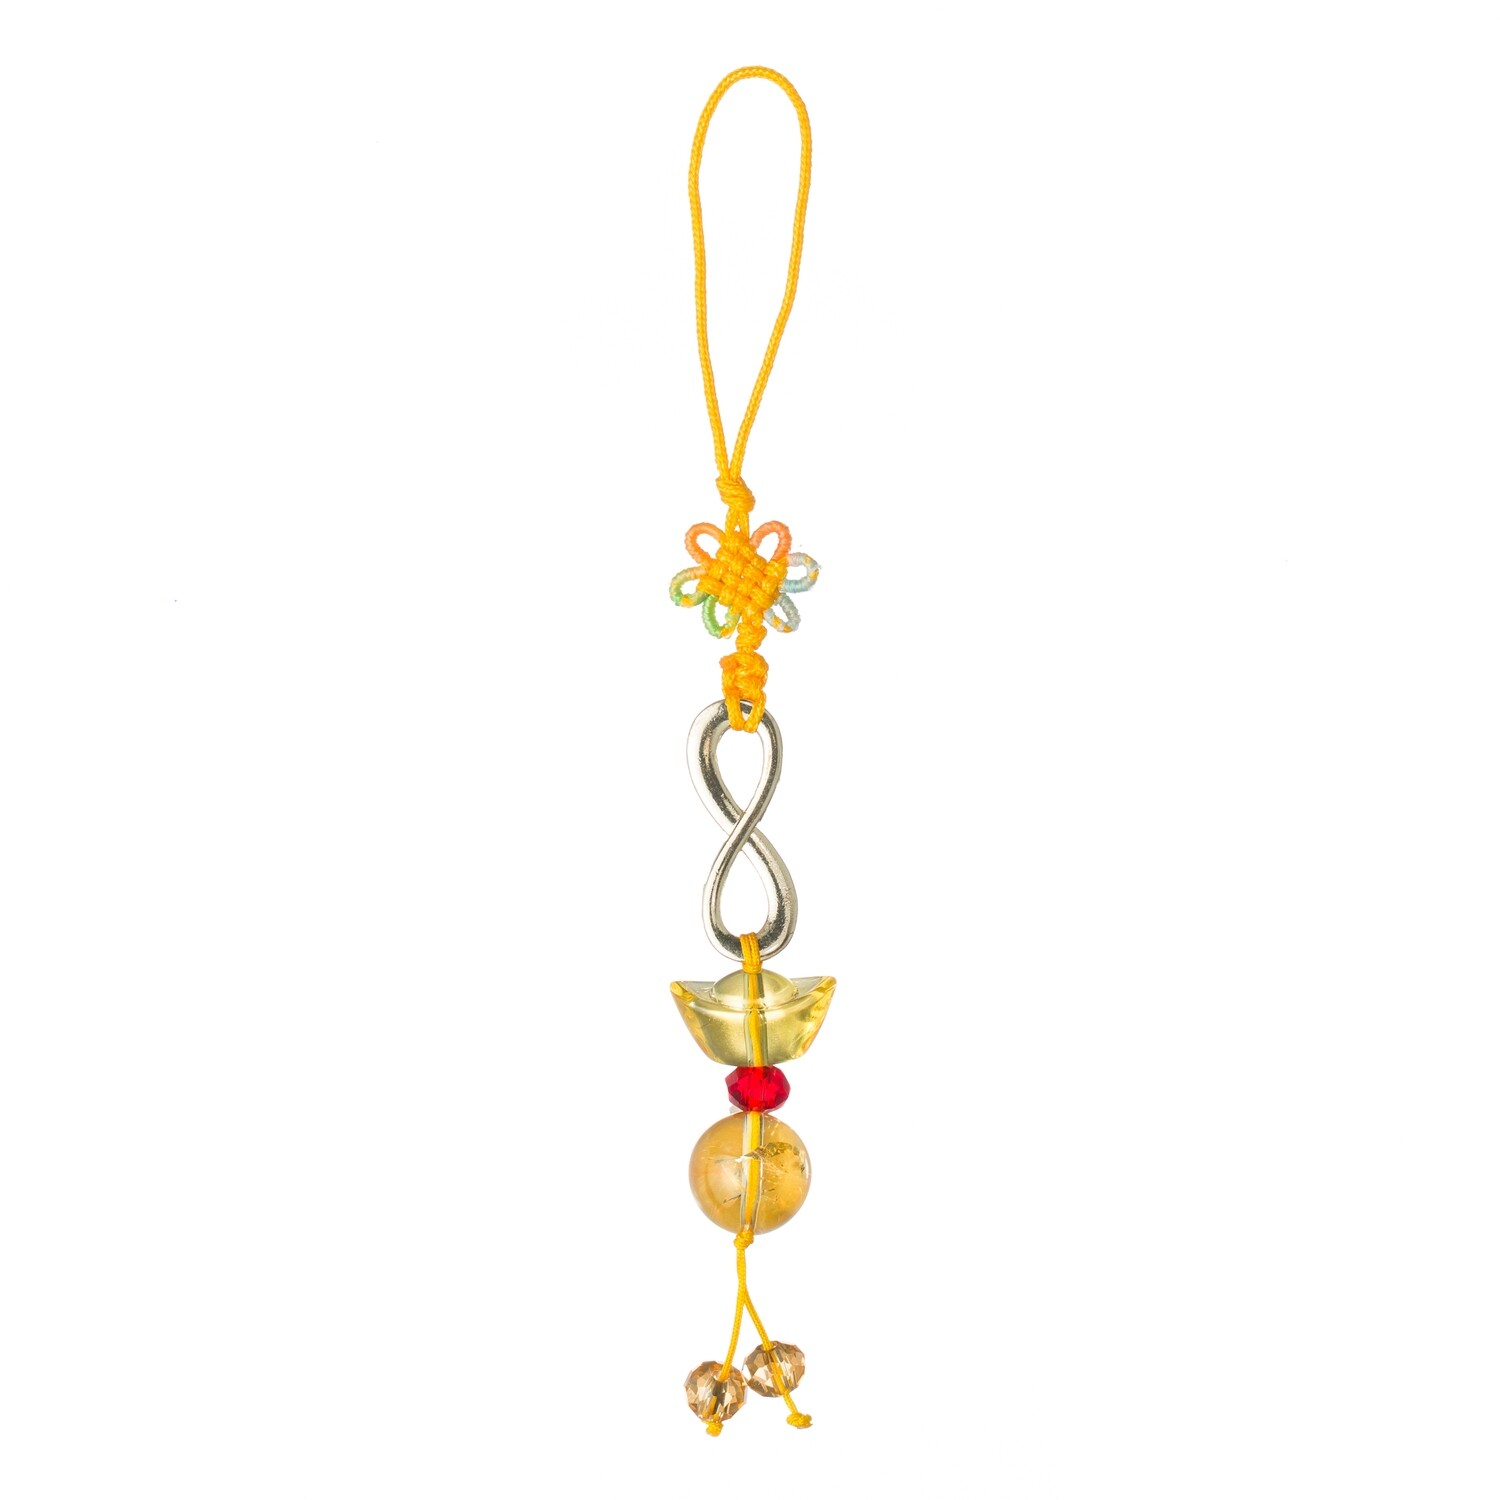 Number 8 Lucky Charm Key Chain Amulet